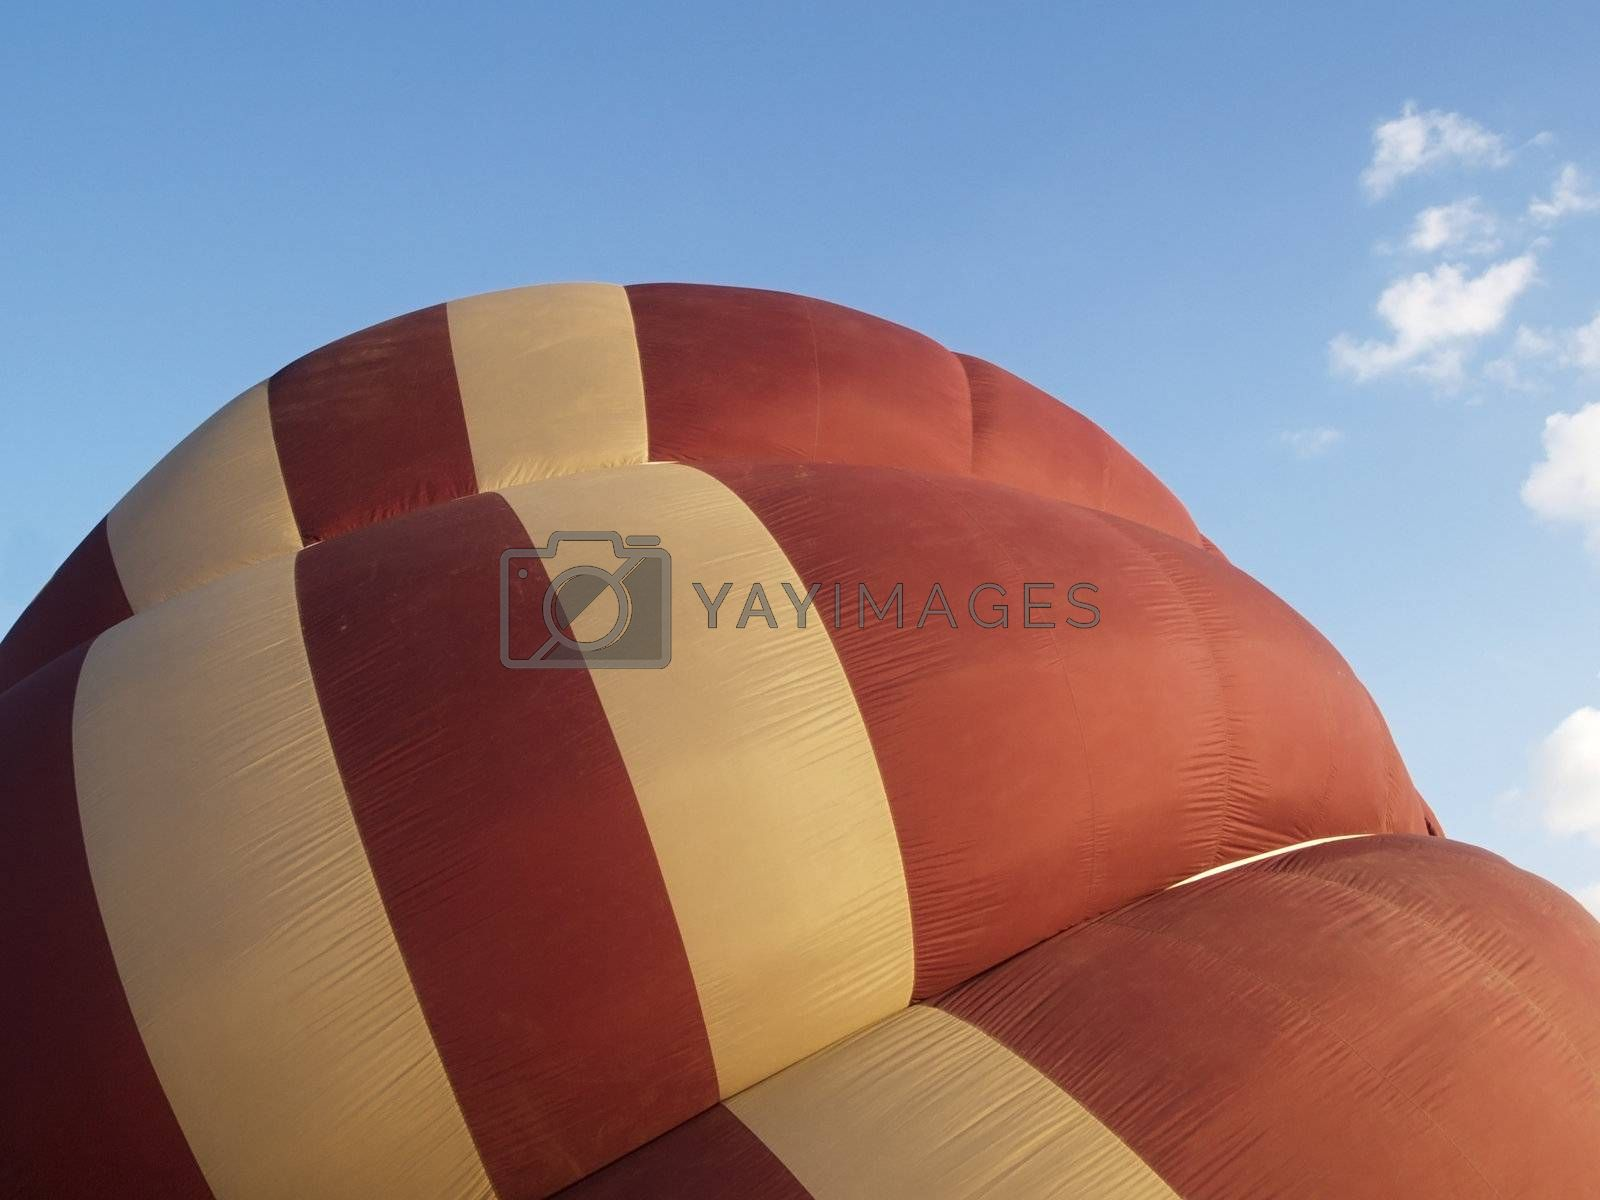 Semi-inflated balloon by epixx